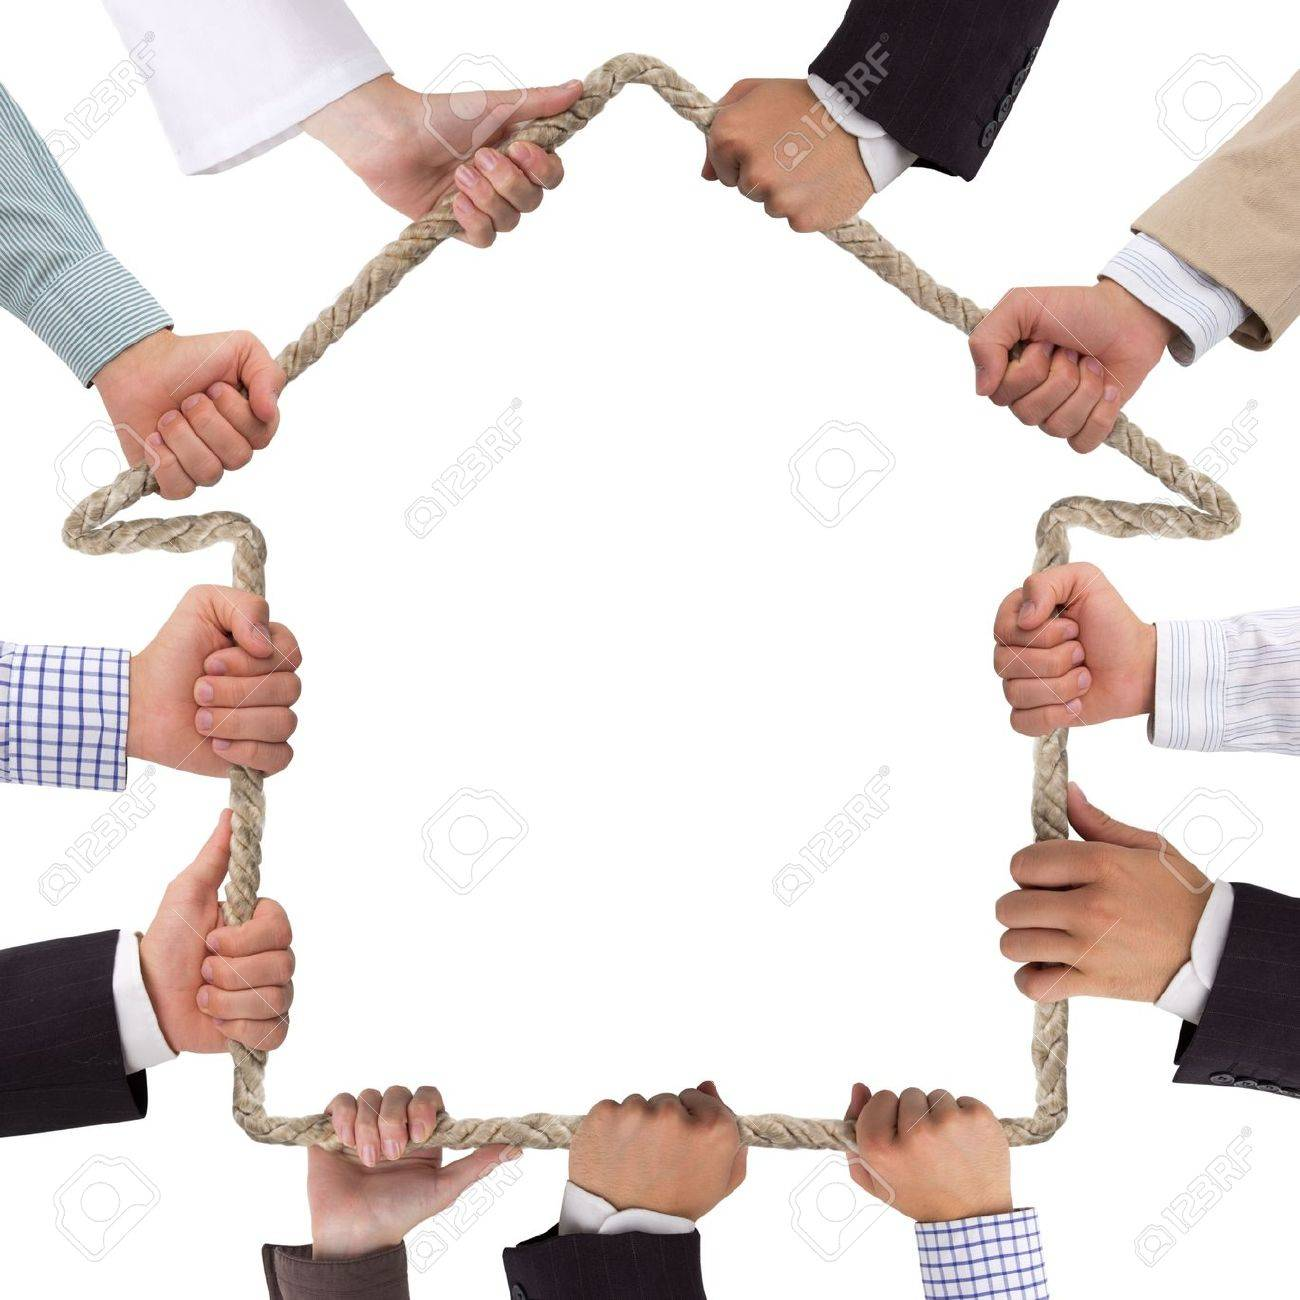 Hands holding rope forming house Stock Photo - 15539099